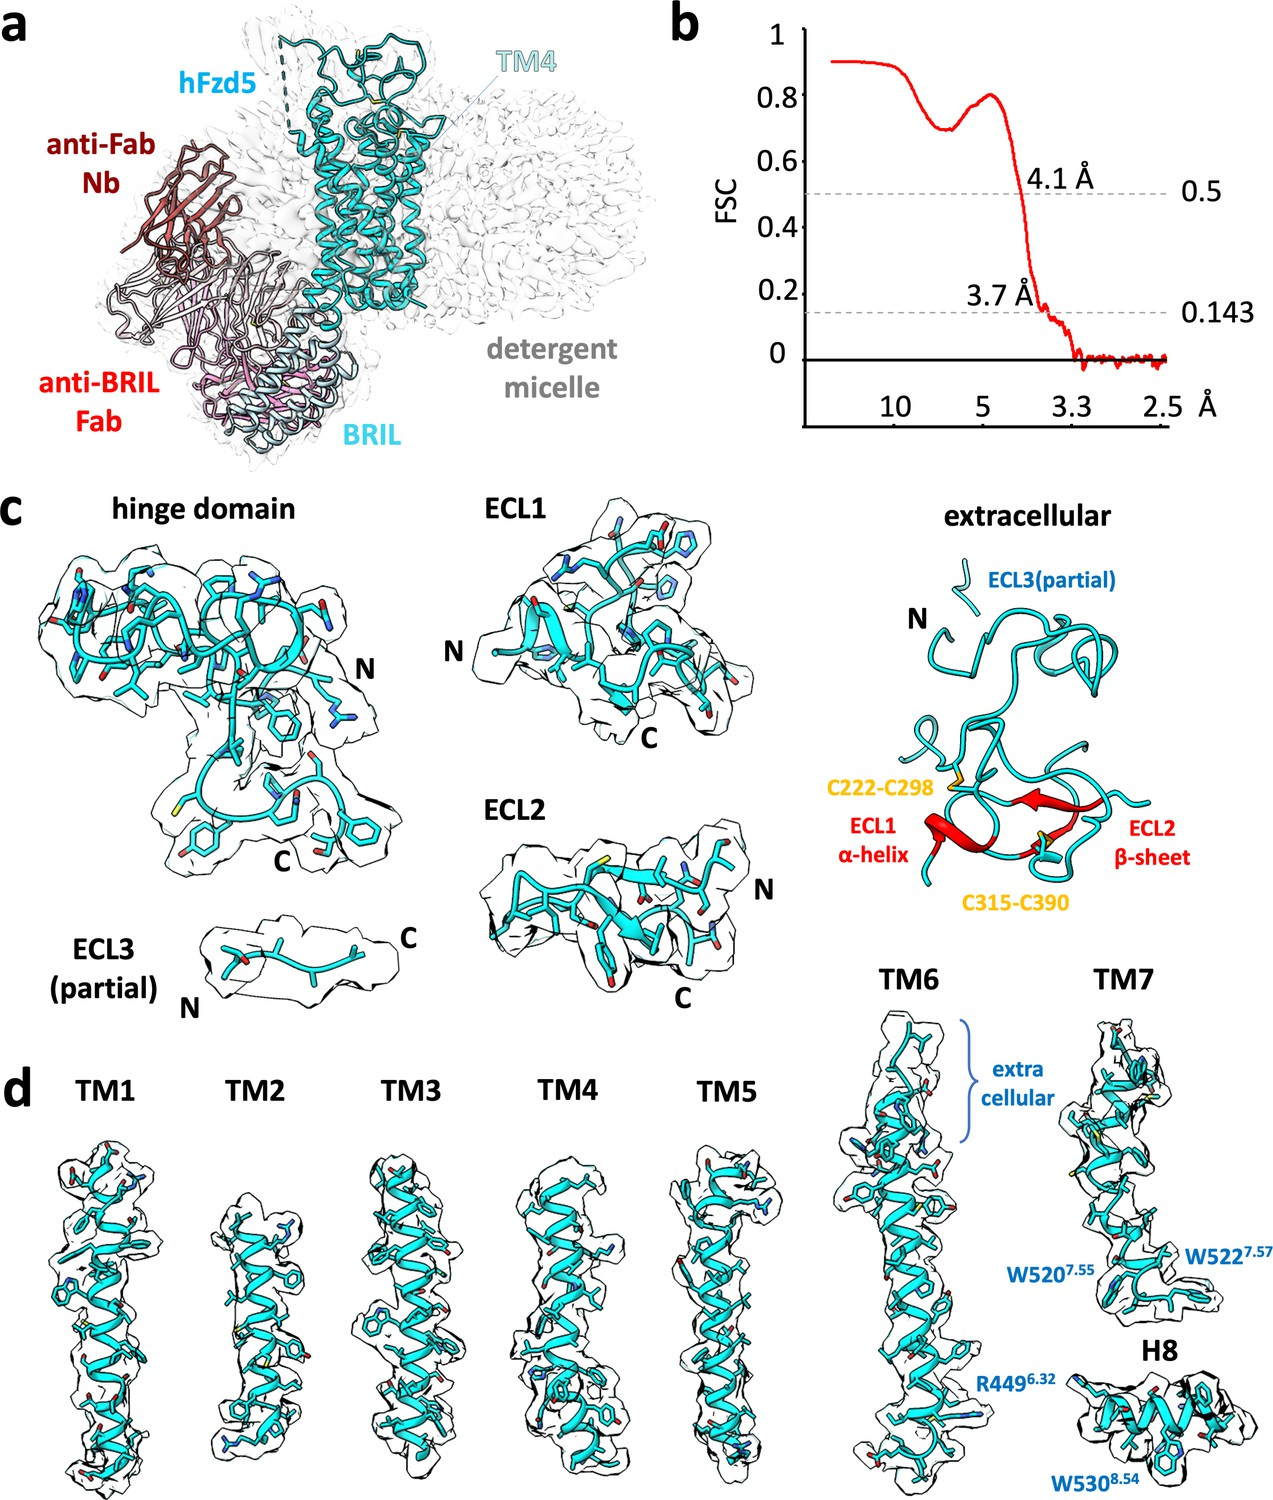 Figures and data in Cryo-EM structures of S-OPA1 reveal